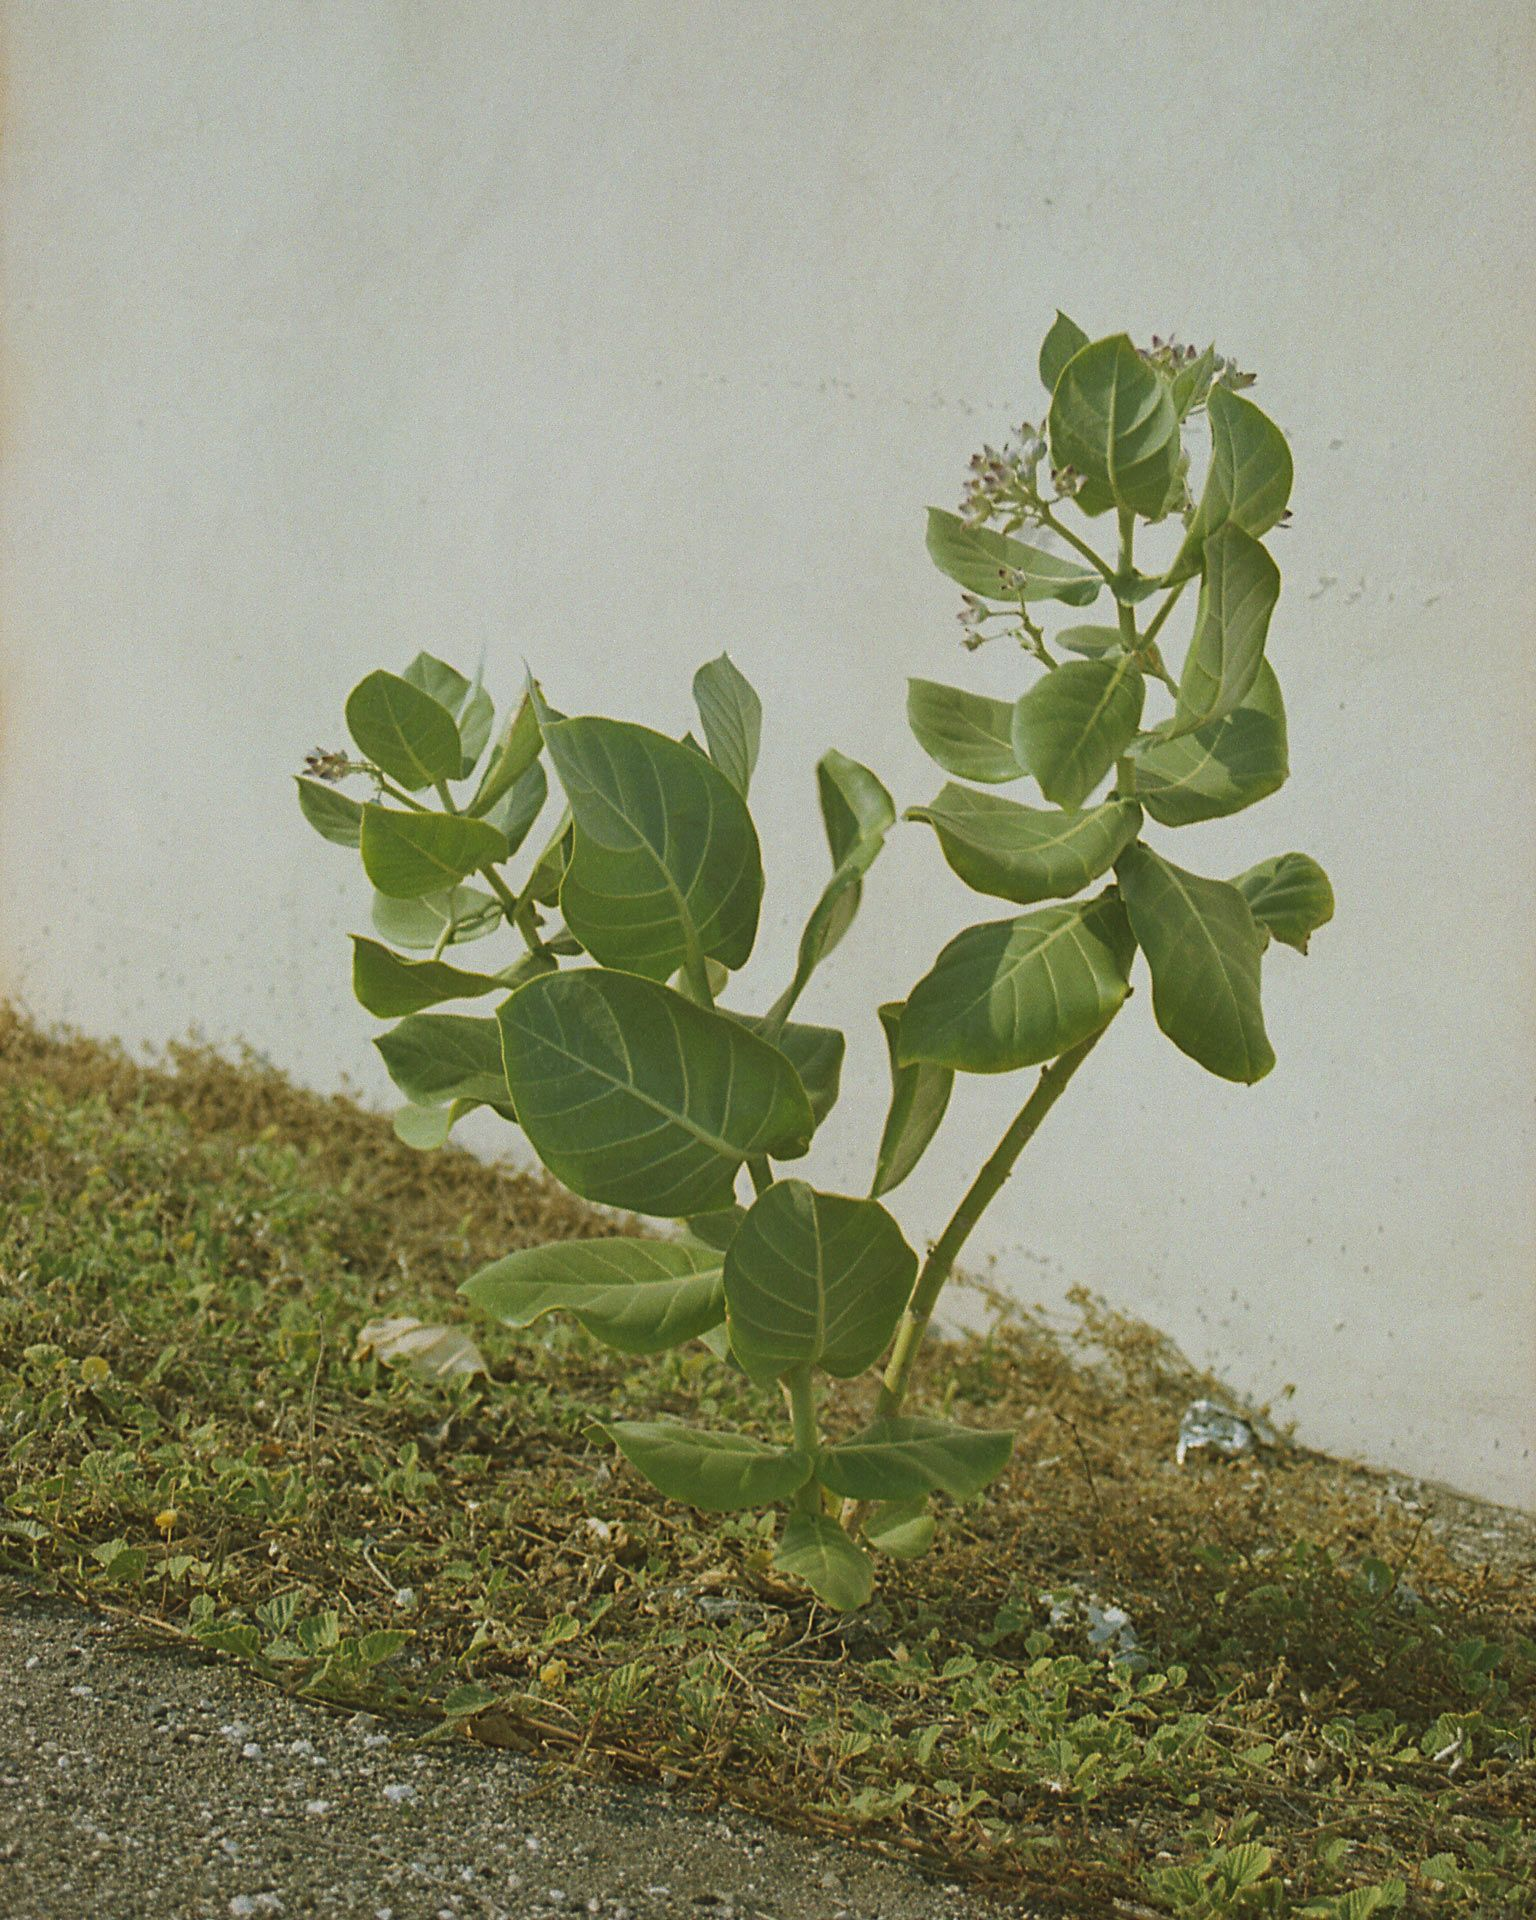 picture of plant on the side of the road by Oumayma B Tanfous in Jamaica